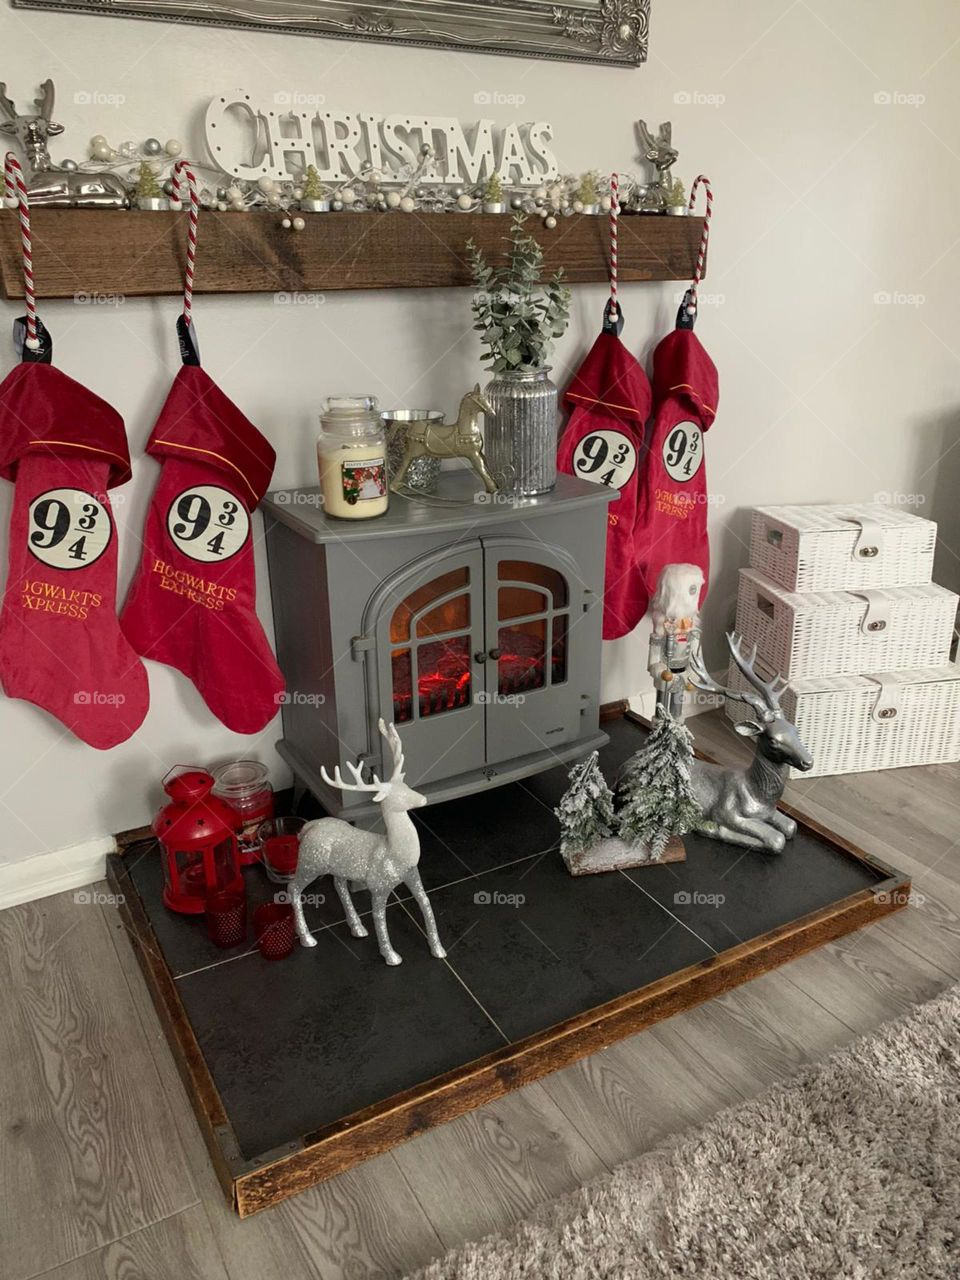 Christmas decorations over the fireplace